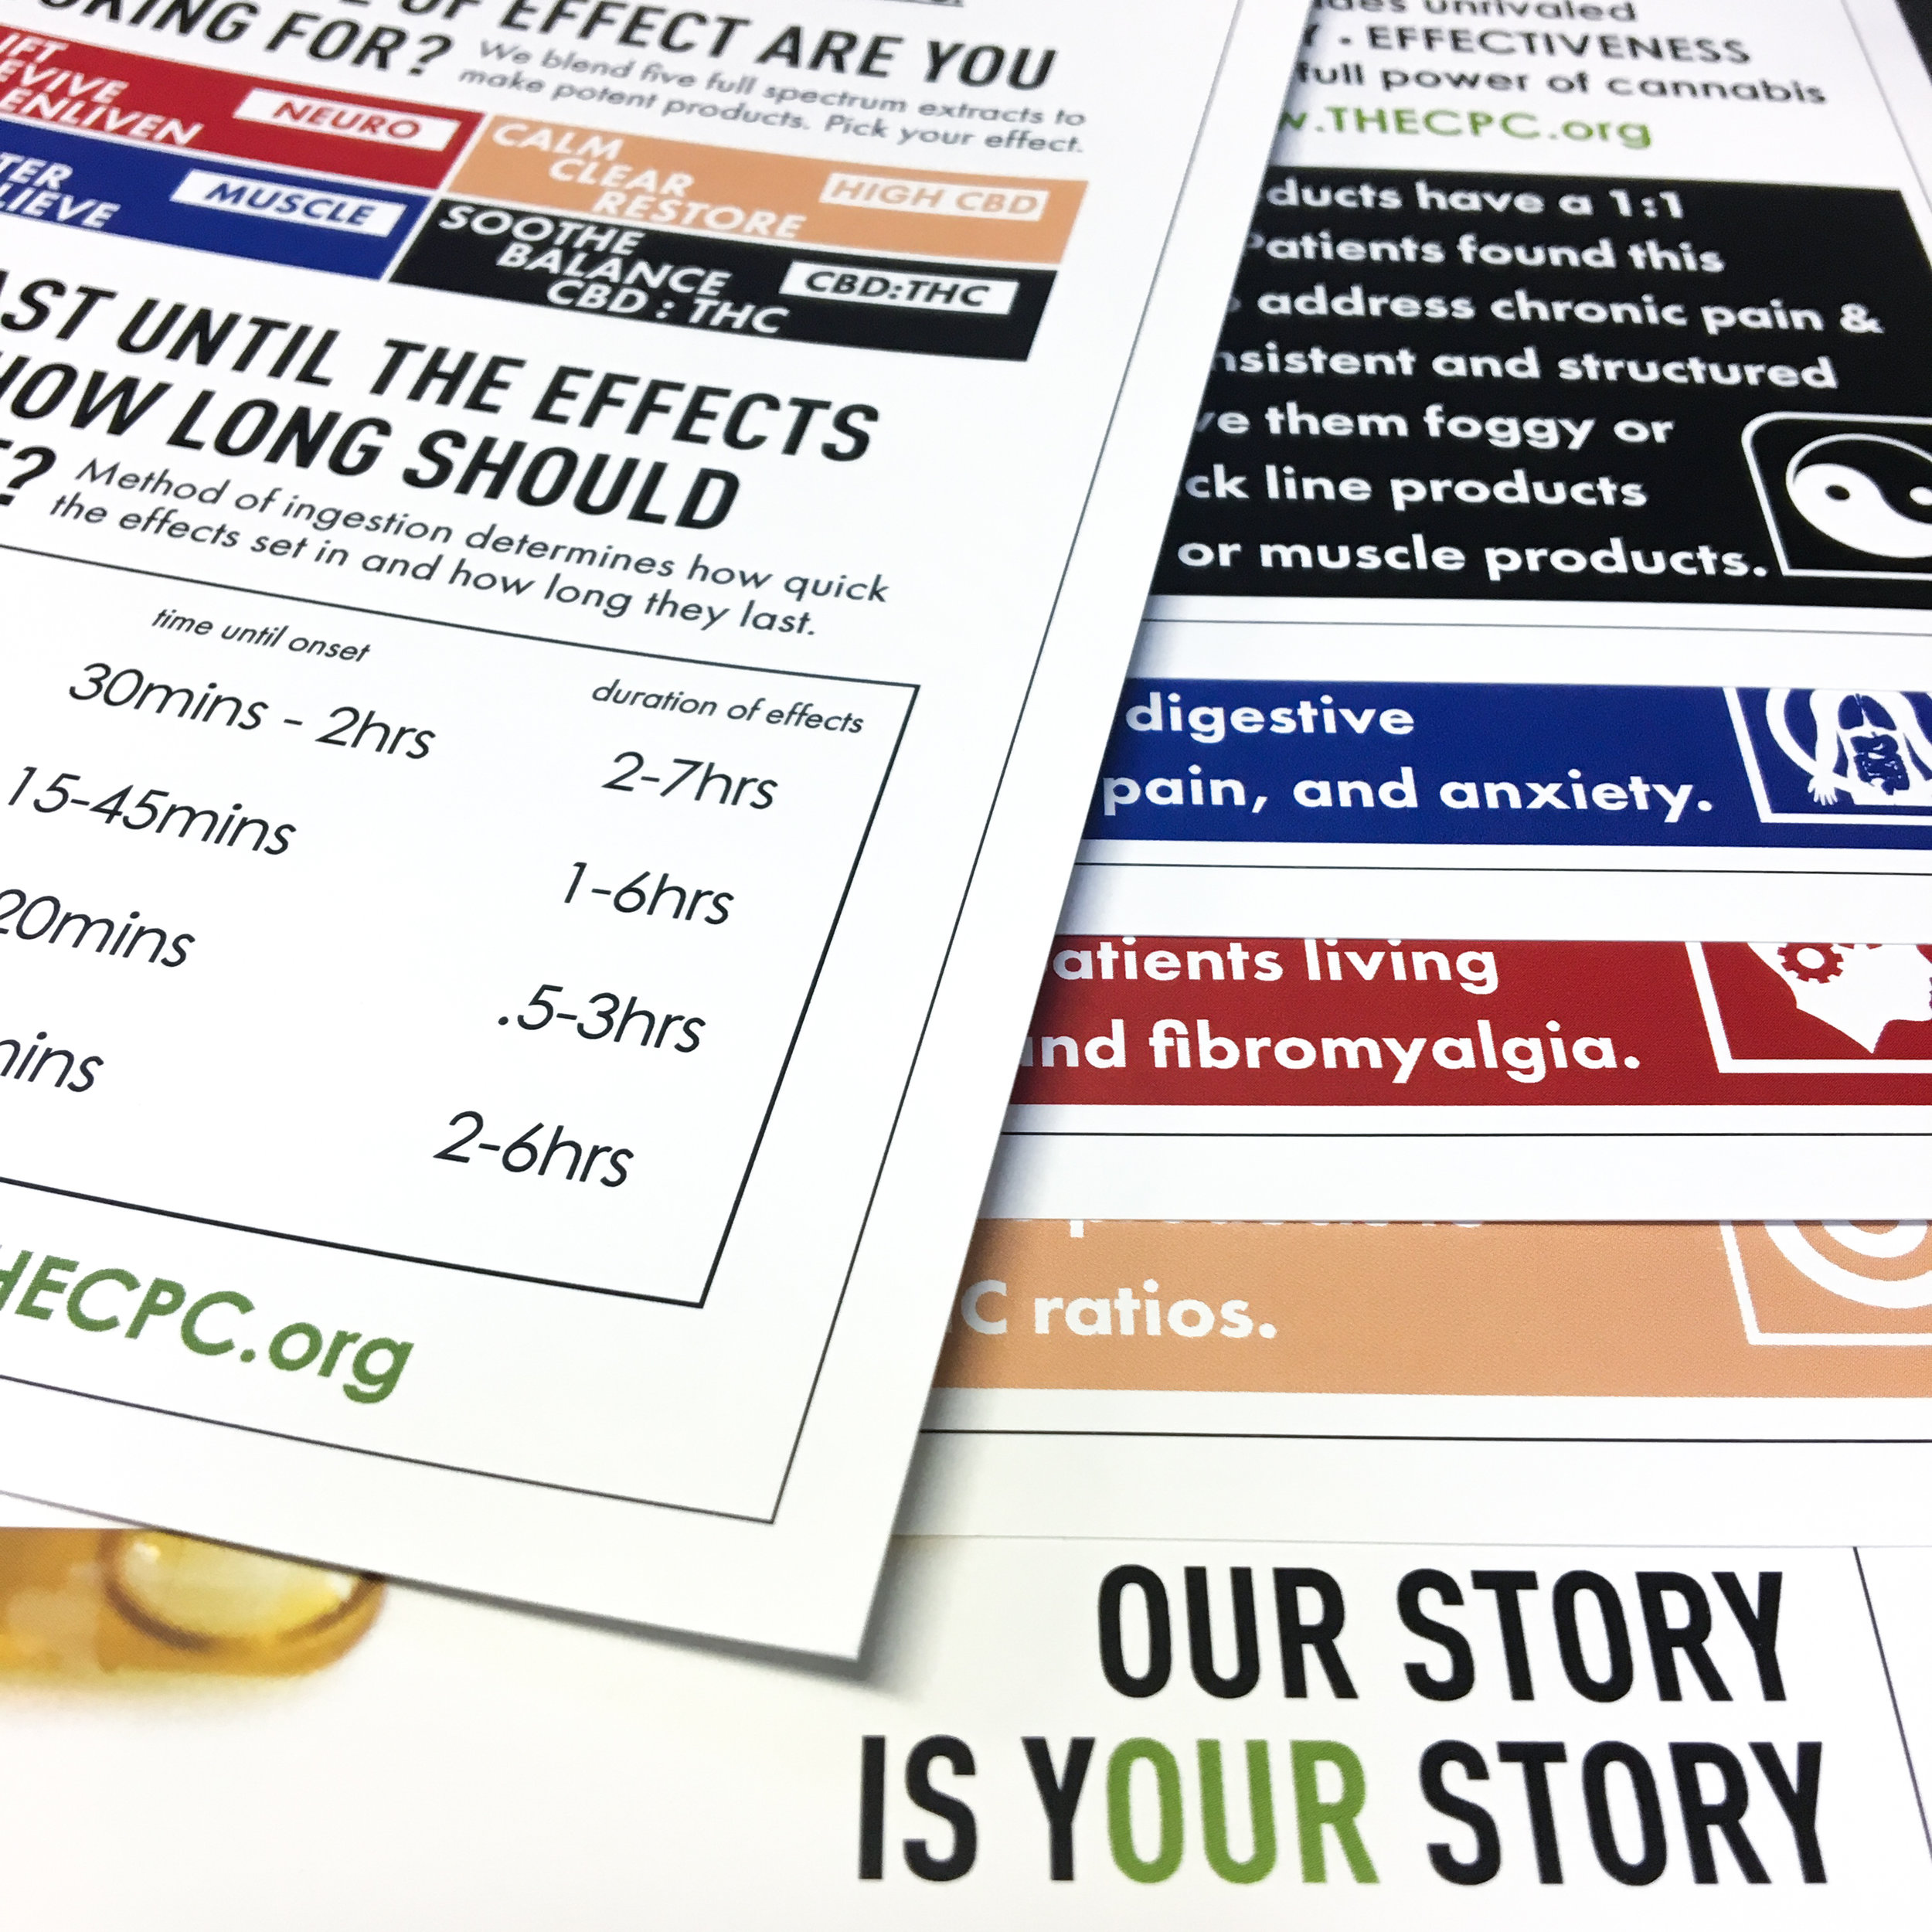 cannabis marketing material your story is our story.jpg